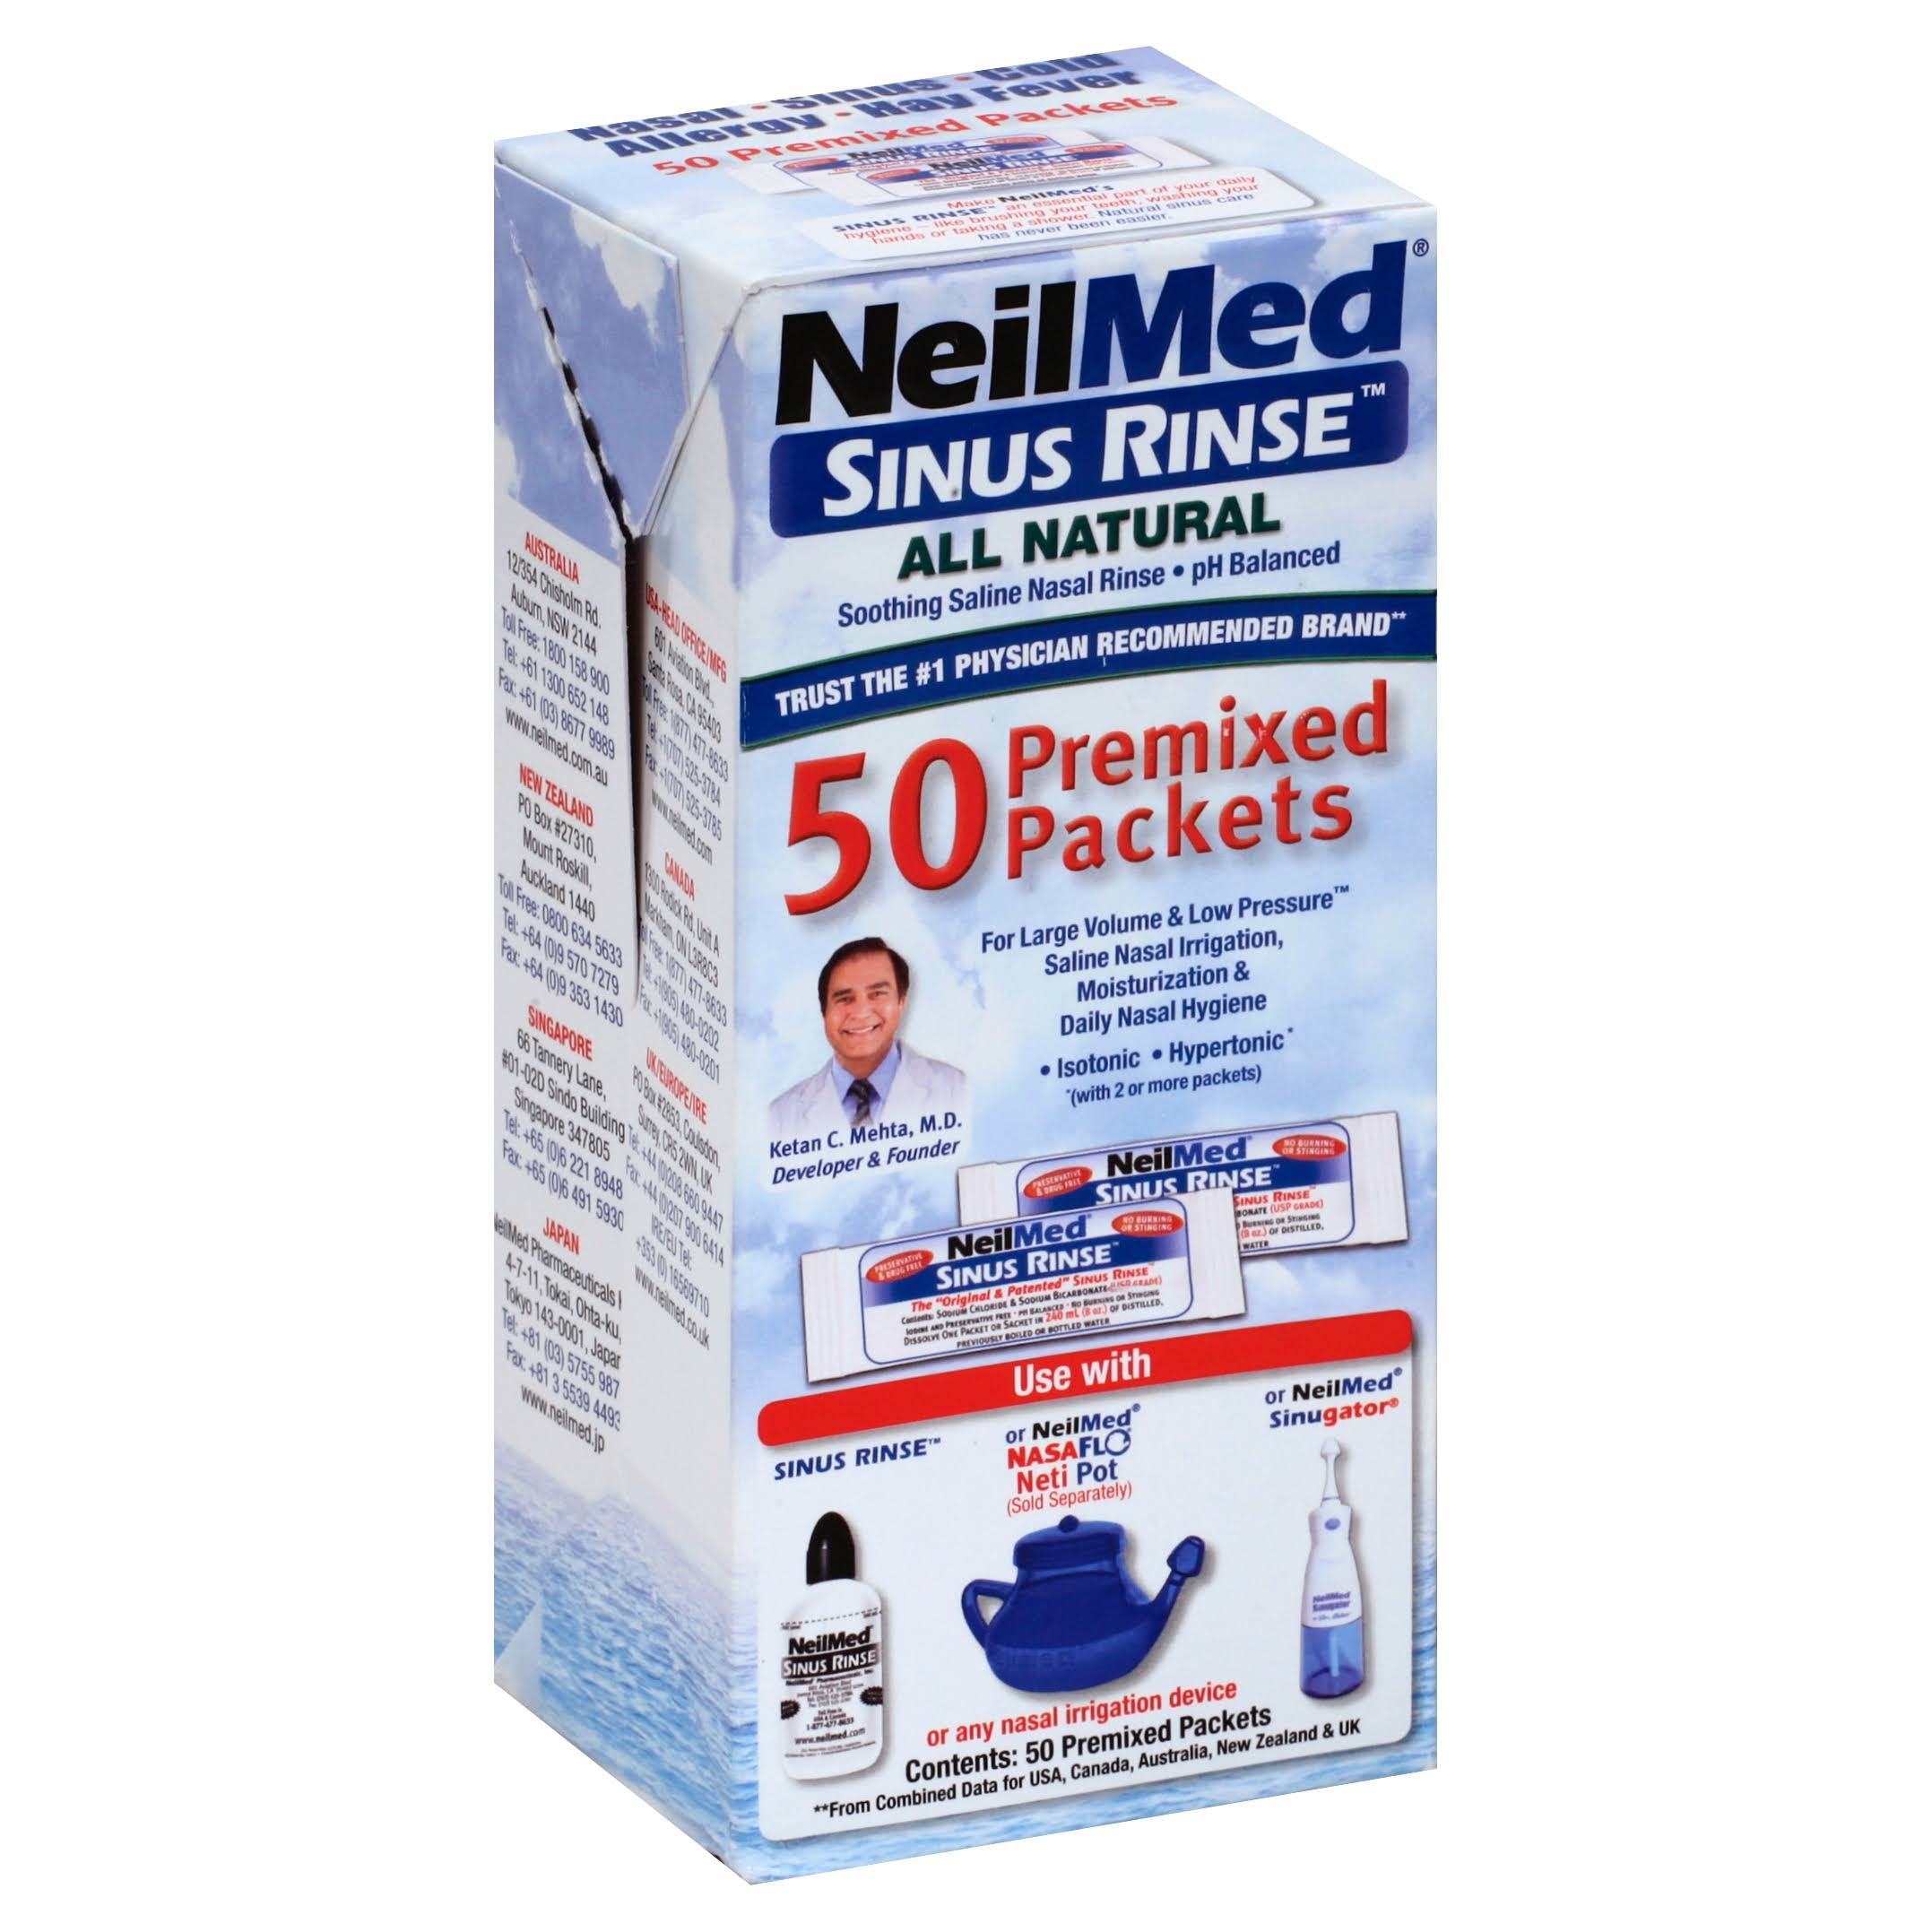 Neil Med Sinus Rinse Premixed Packets - 50pk